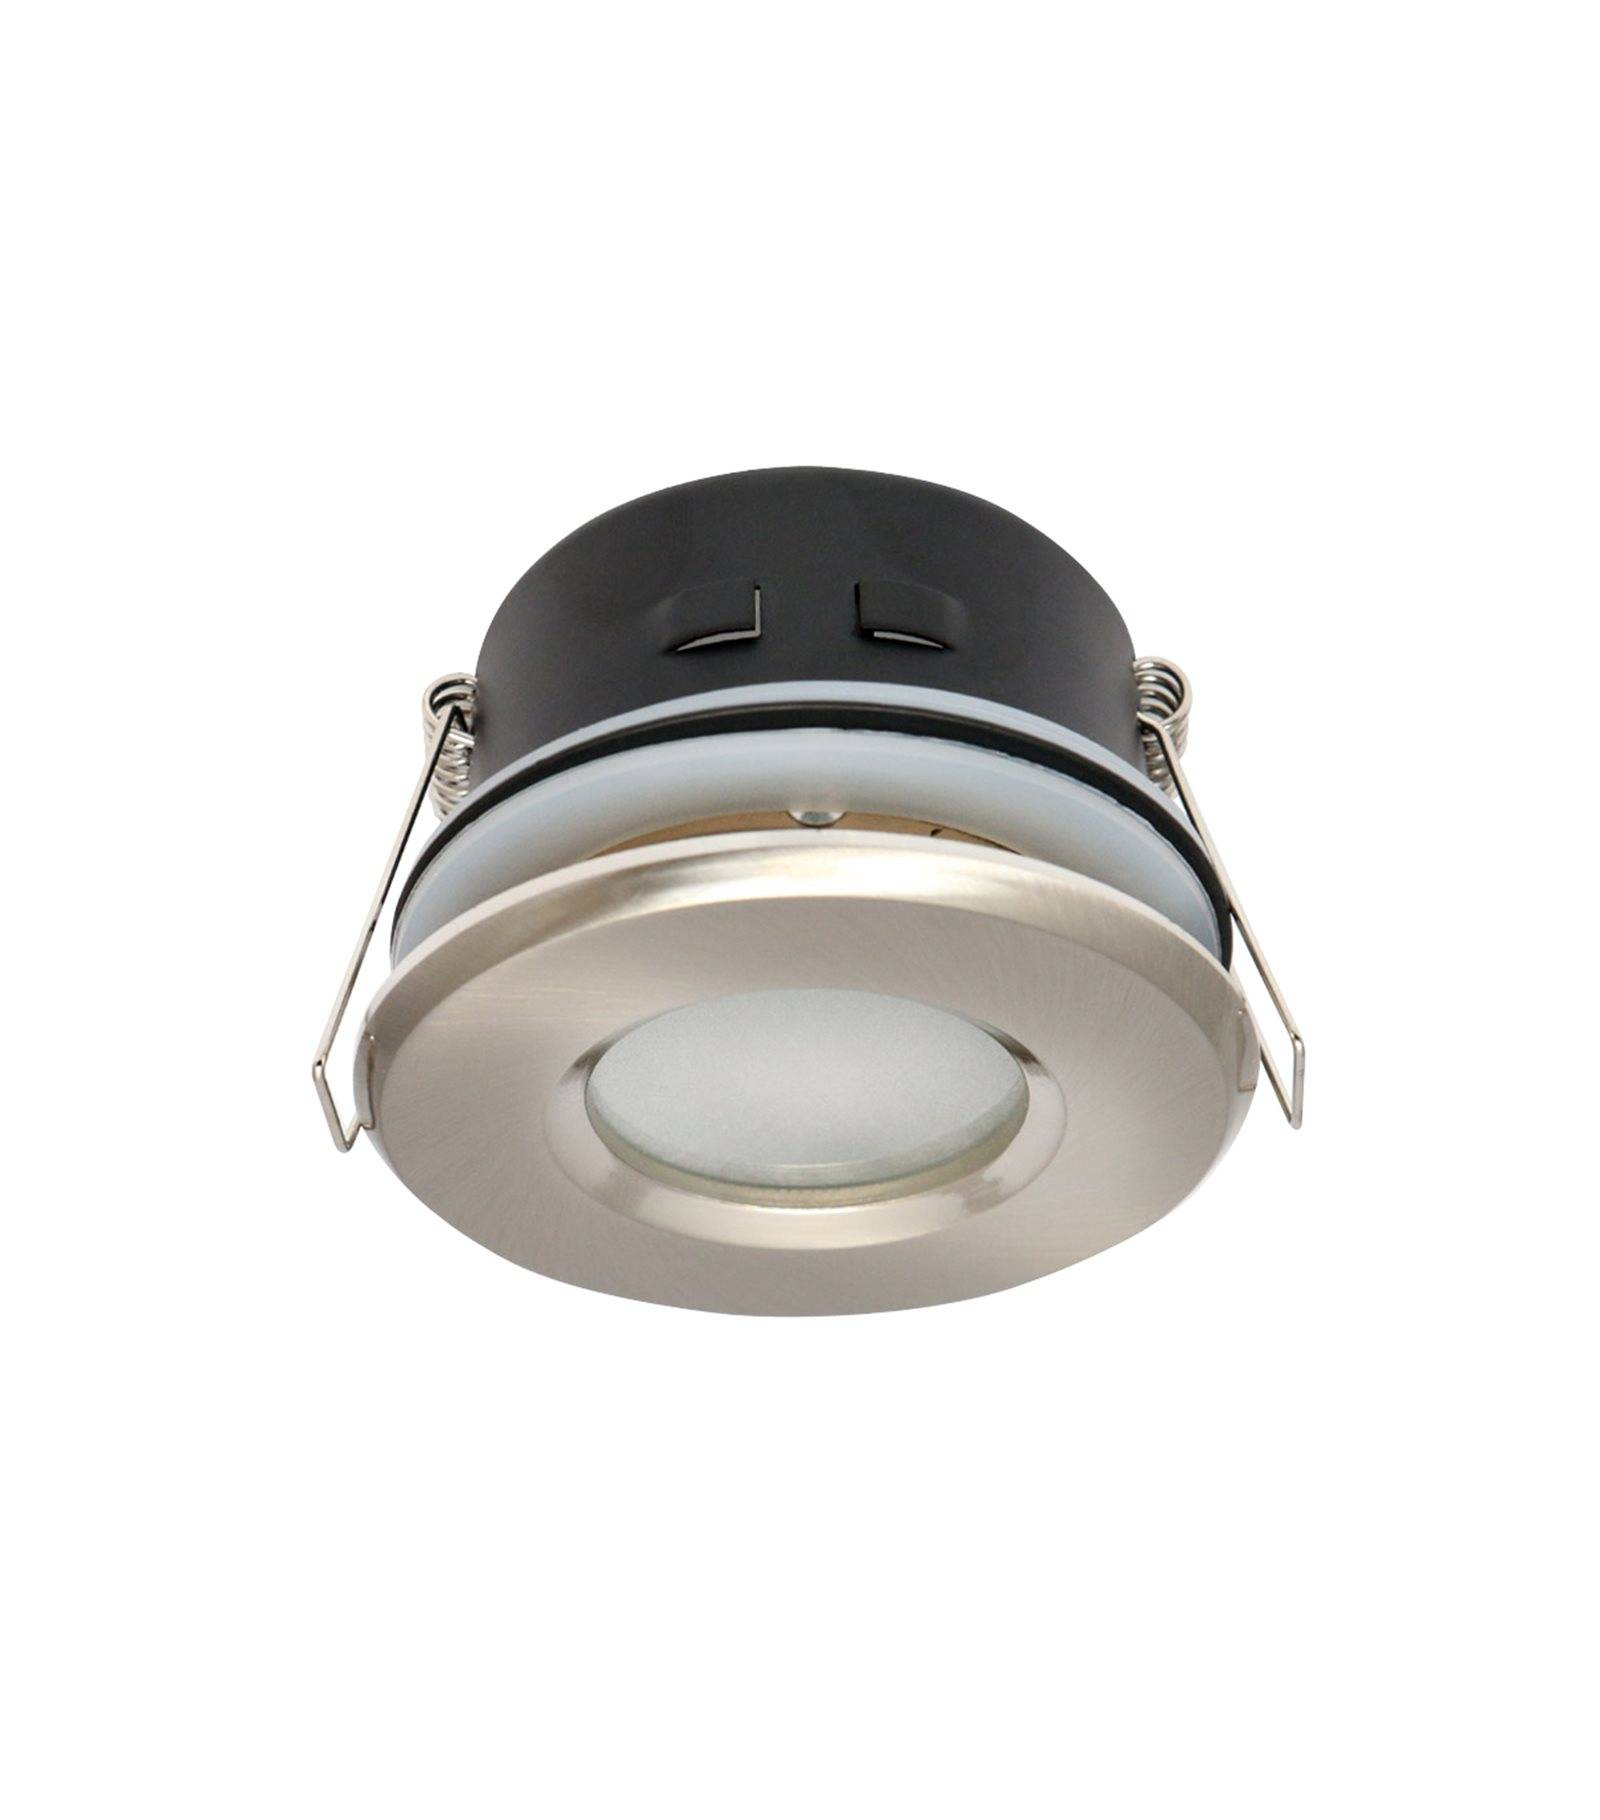 Spot encastrable salle de bain nickel satin rond gu5 3 for Spot led ip65 salle bain